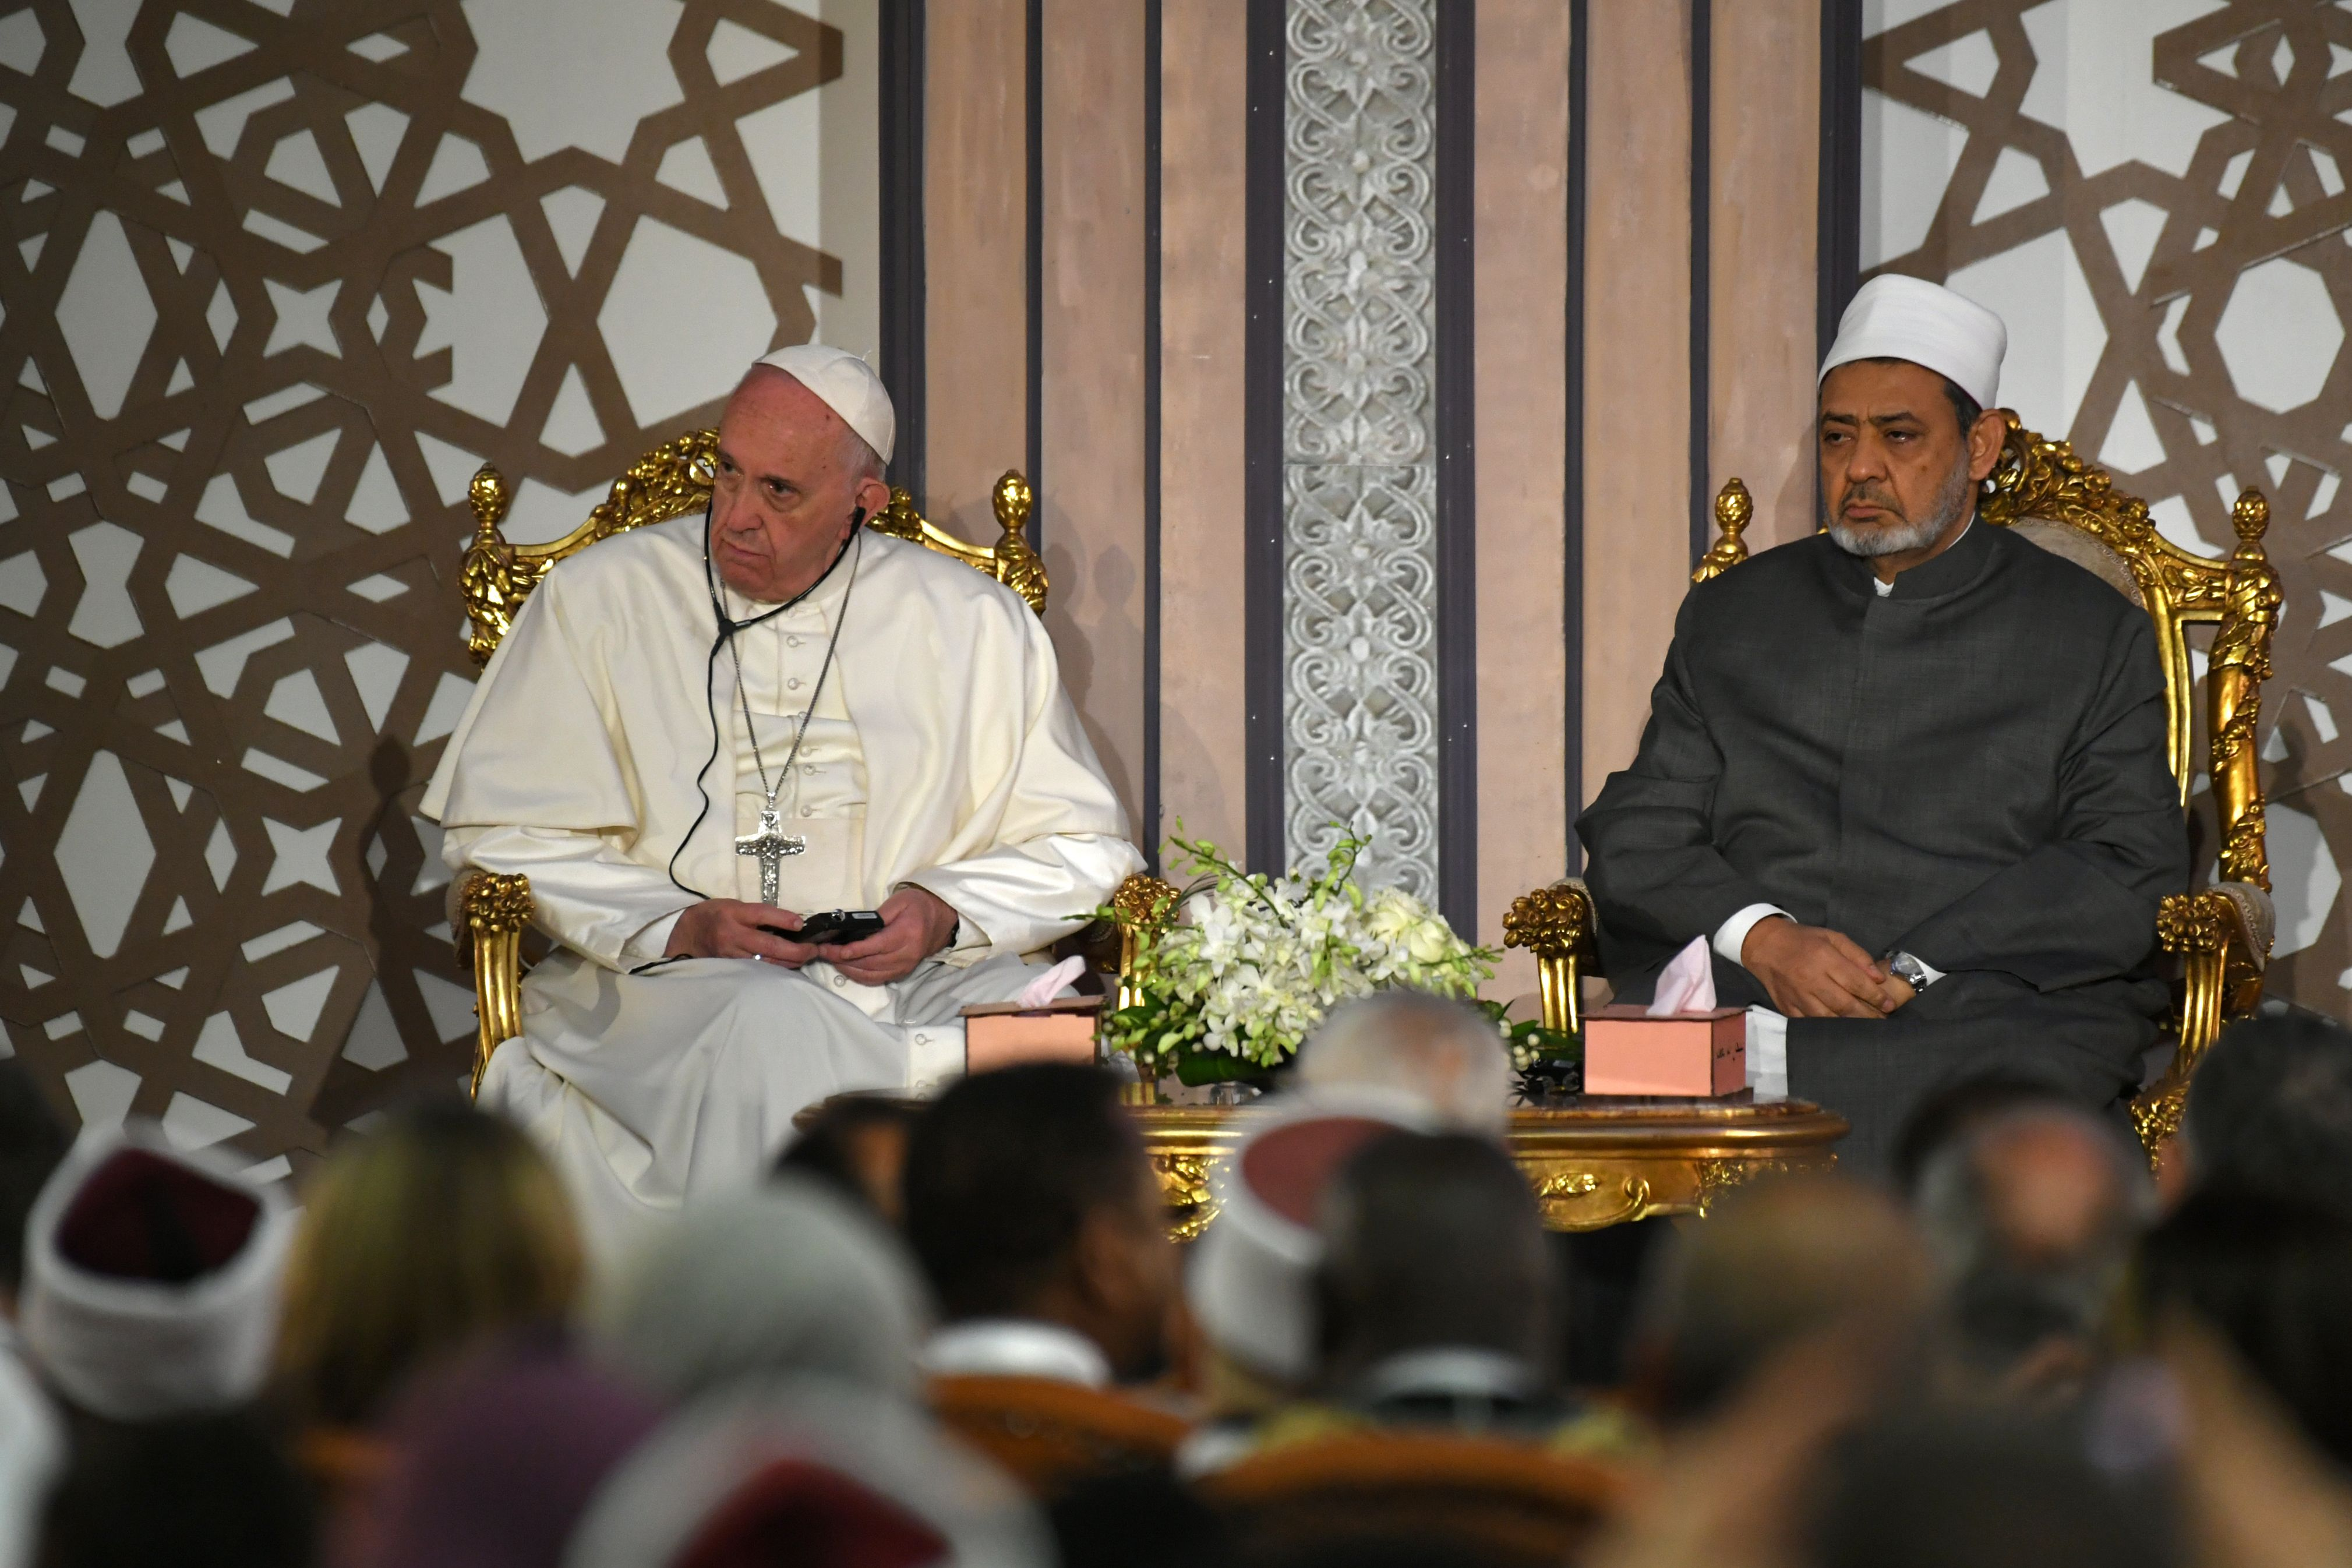 Pope Francis (L) meets with Sheikh Ahmed al-Tayeb, the Grand Imam of Al-Azhar, during a visit to the prestigious Sunni institution in Cairo on April 28, 2017. (ANDREAS SOLARO/AFP/Getty Images)